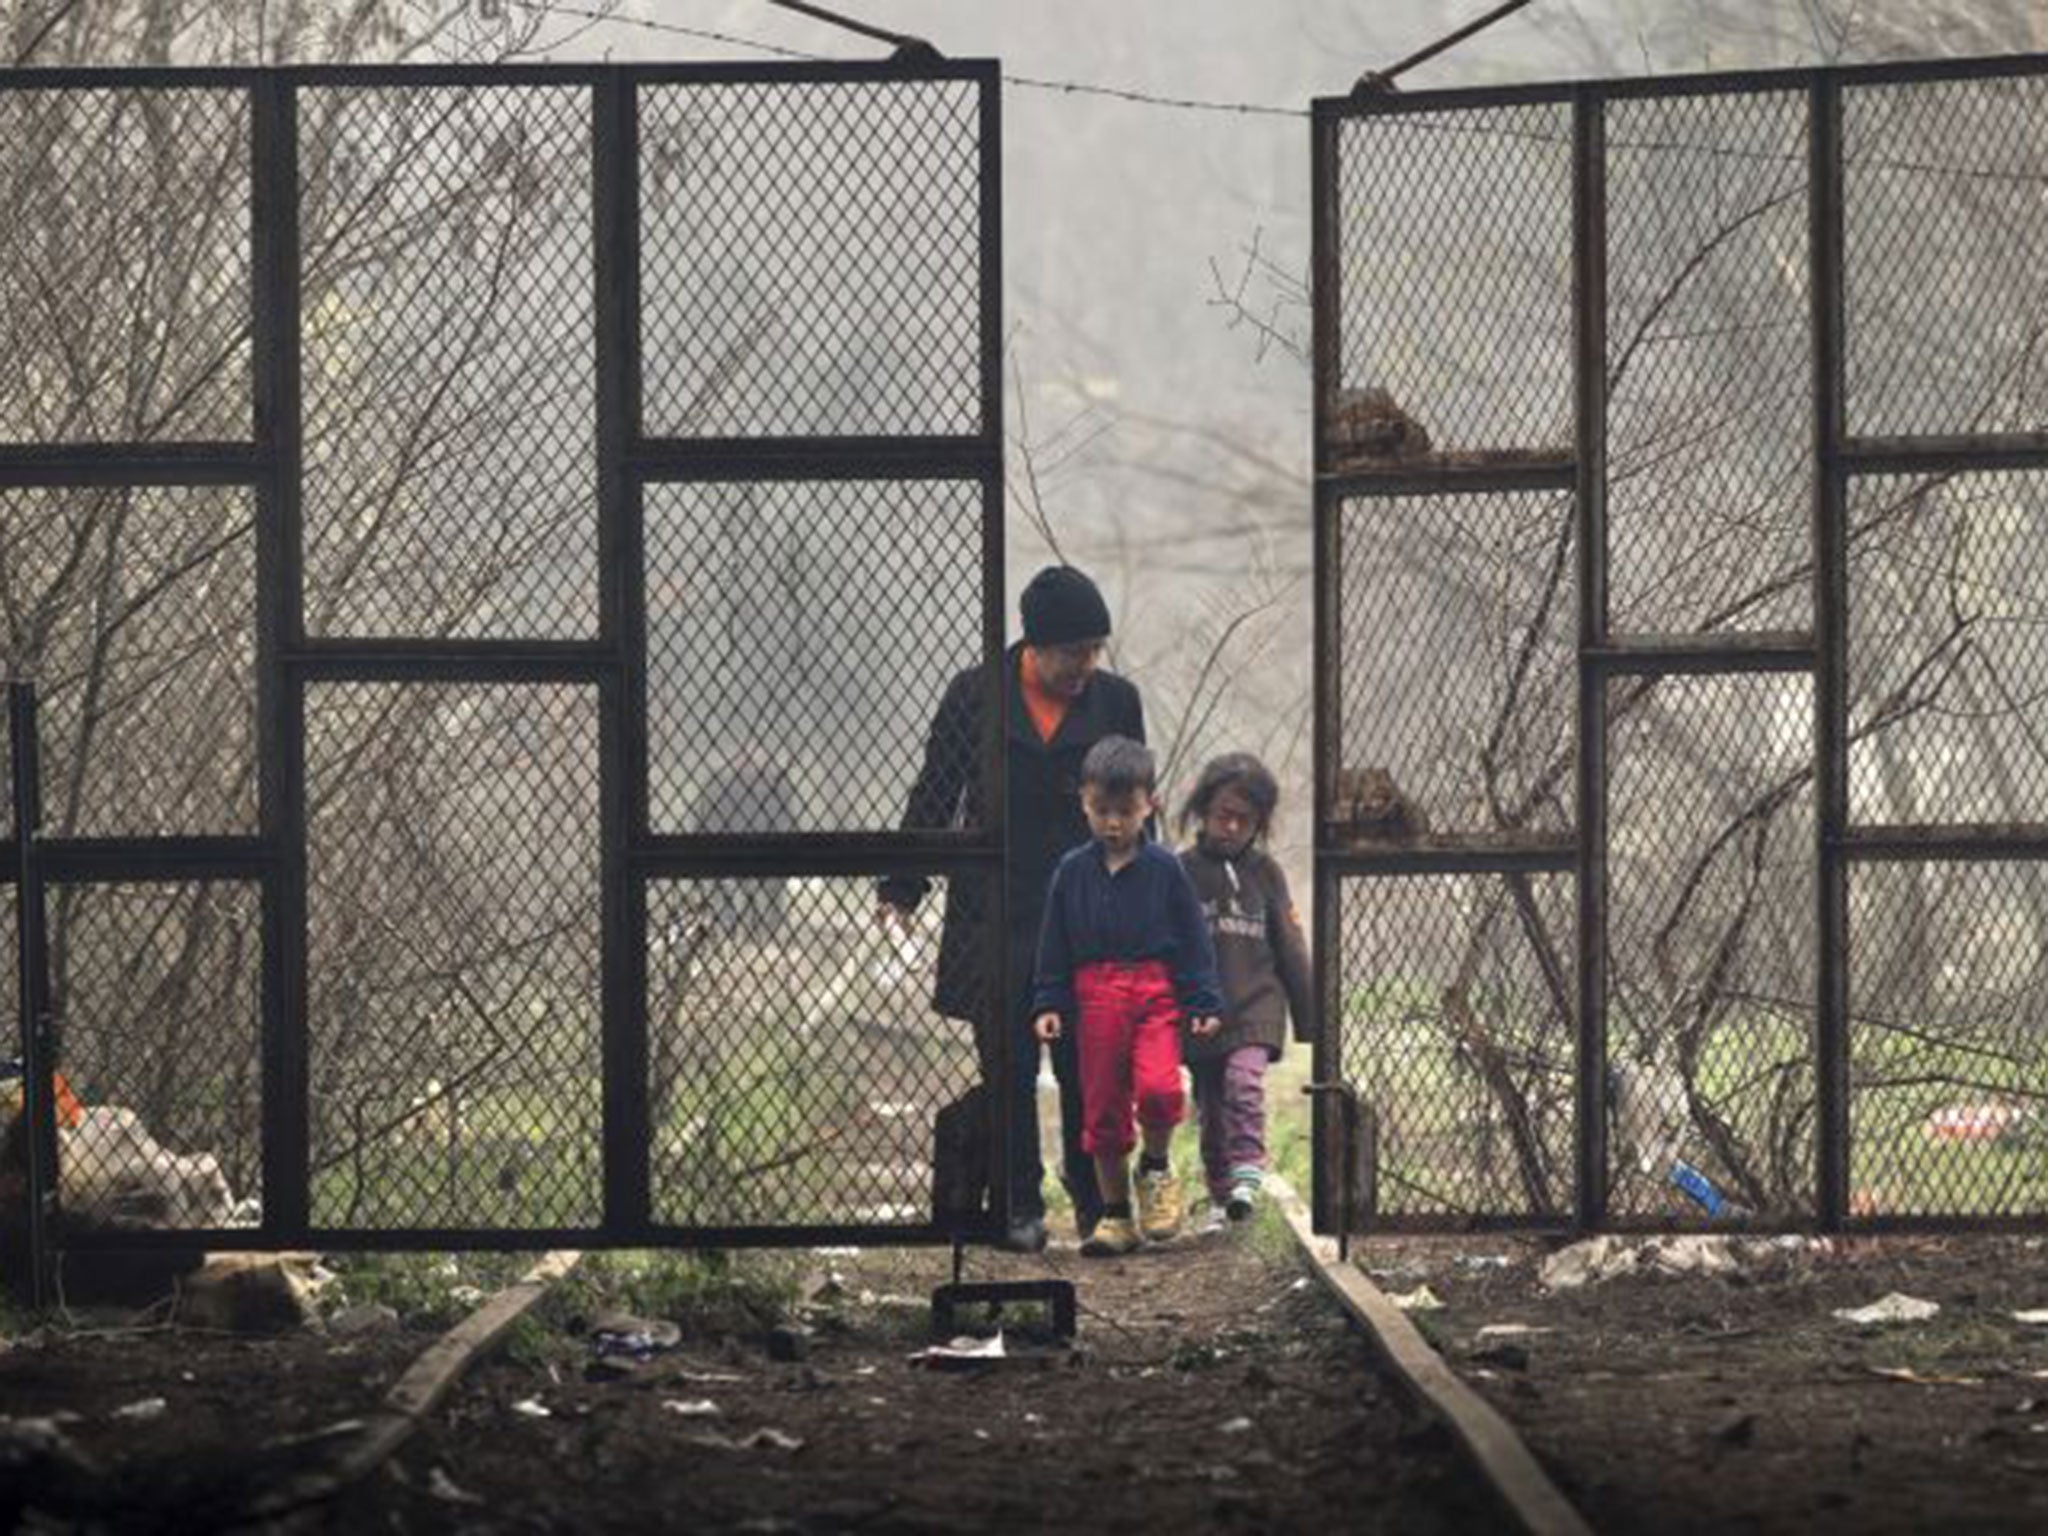 Greek refugee camp is 'as bad as a Nazi concentration camp', says minister